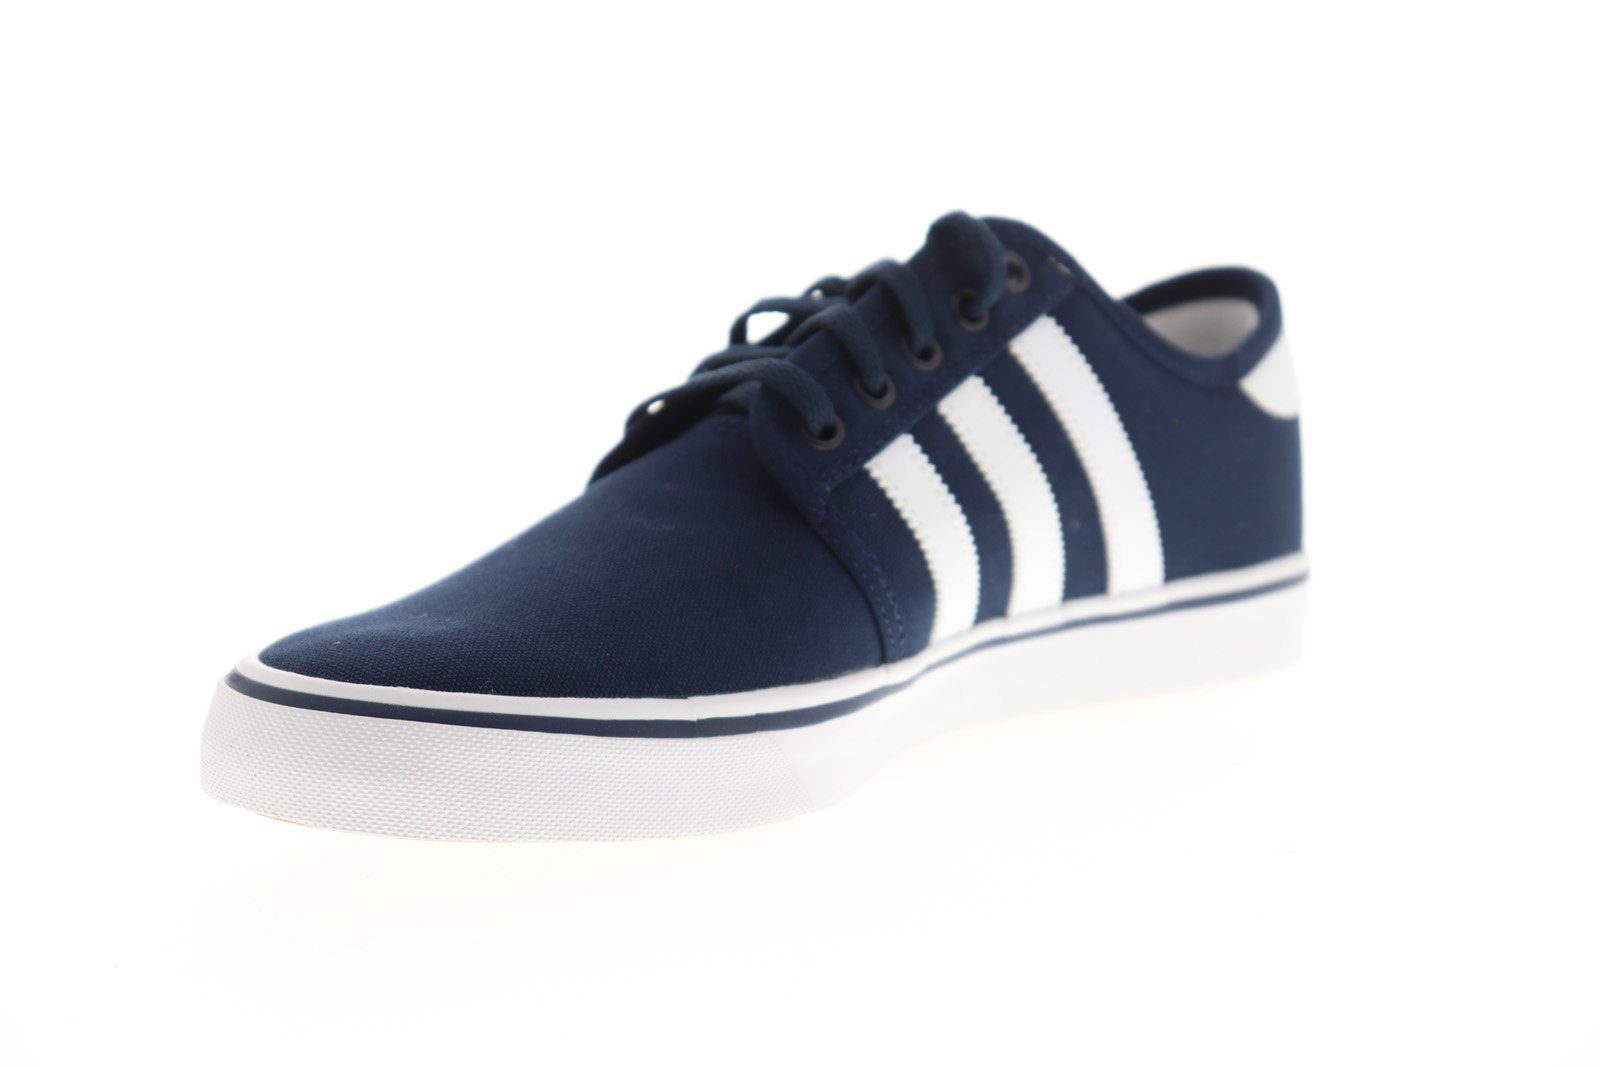 Ruze Shoes: Adidas Seeley Mens Blue Canvas Casual Lace Up